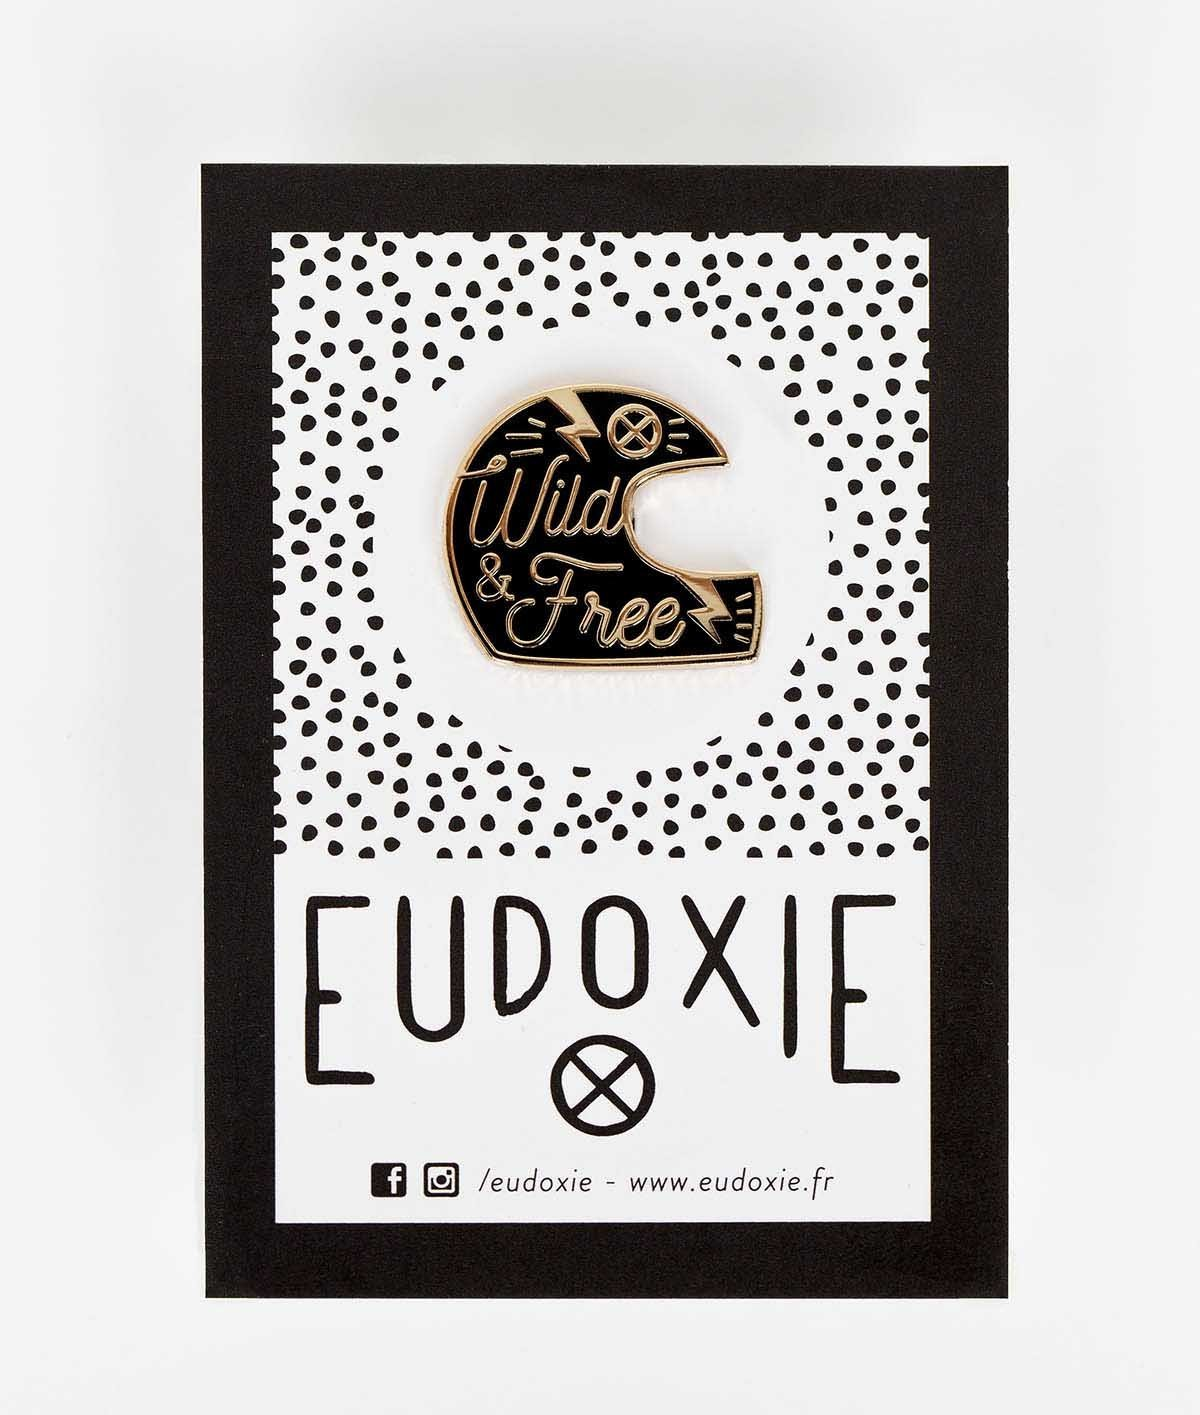 Eudoxie - Eudoxie Helmet Black Pin - Accessories - Salt Flats Clothing